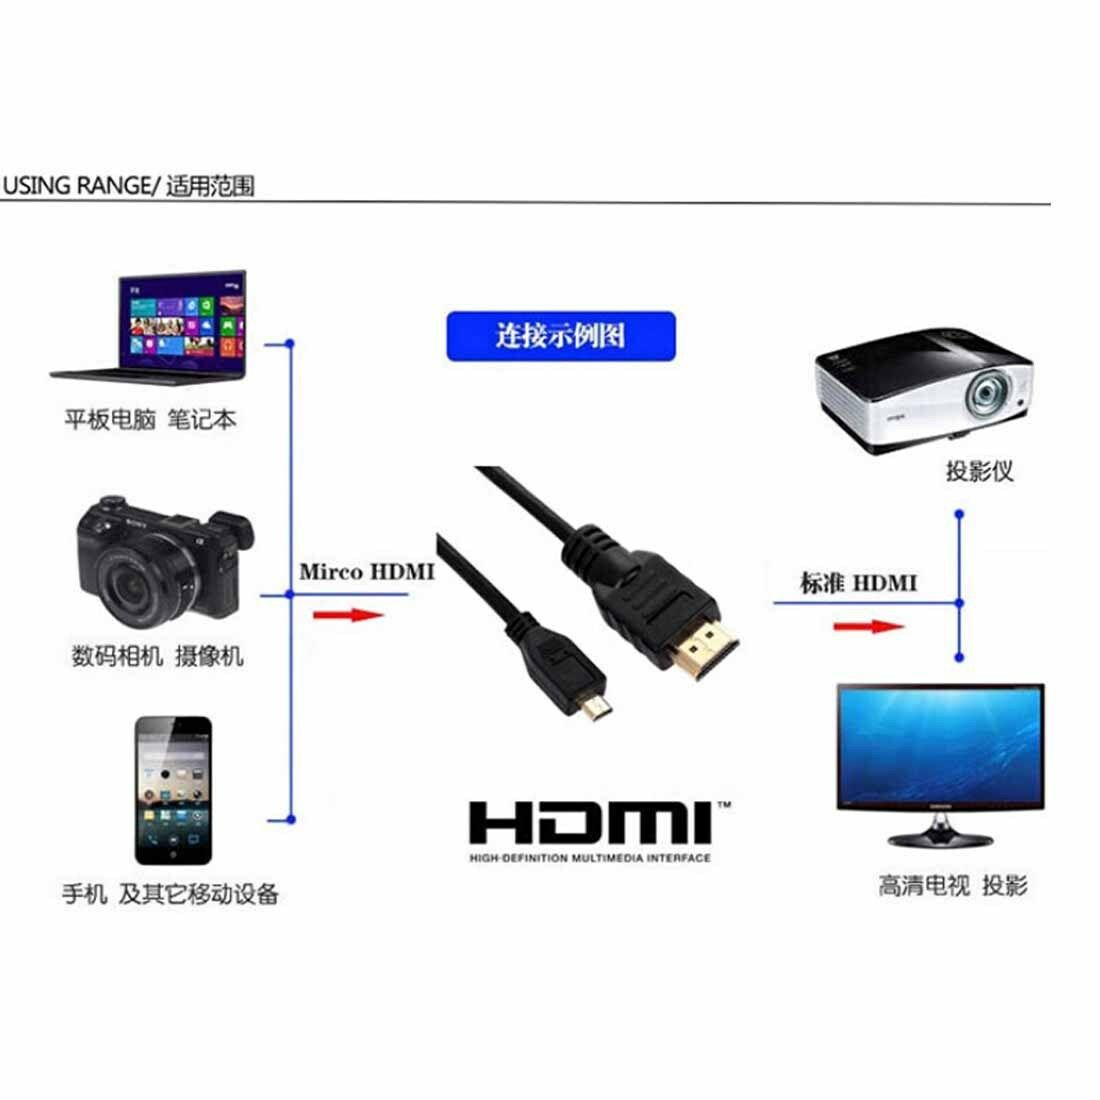 USB cable and HDMI cable for Olympus PEN E-PL5